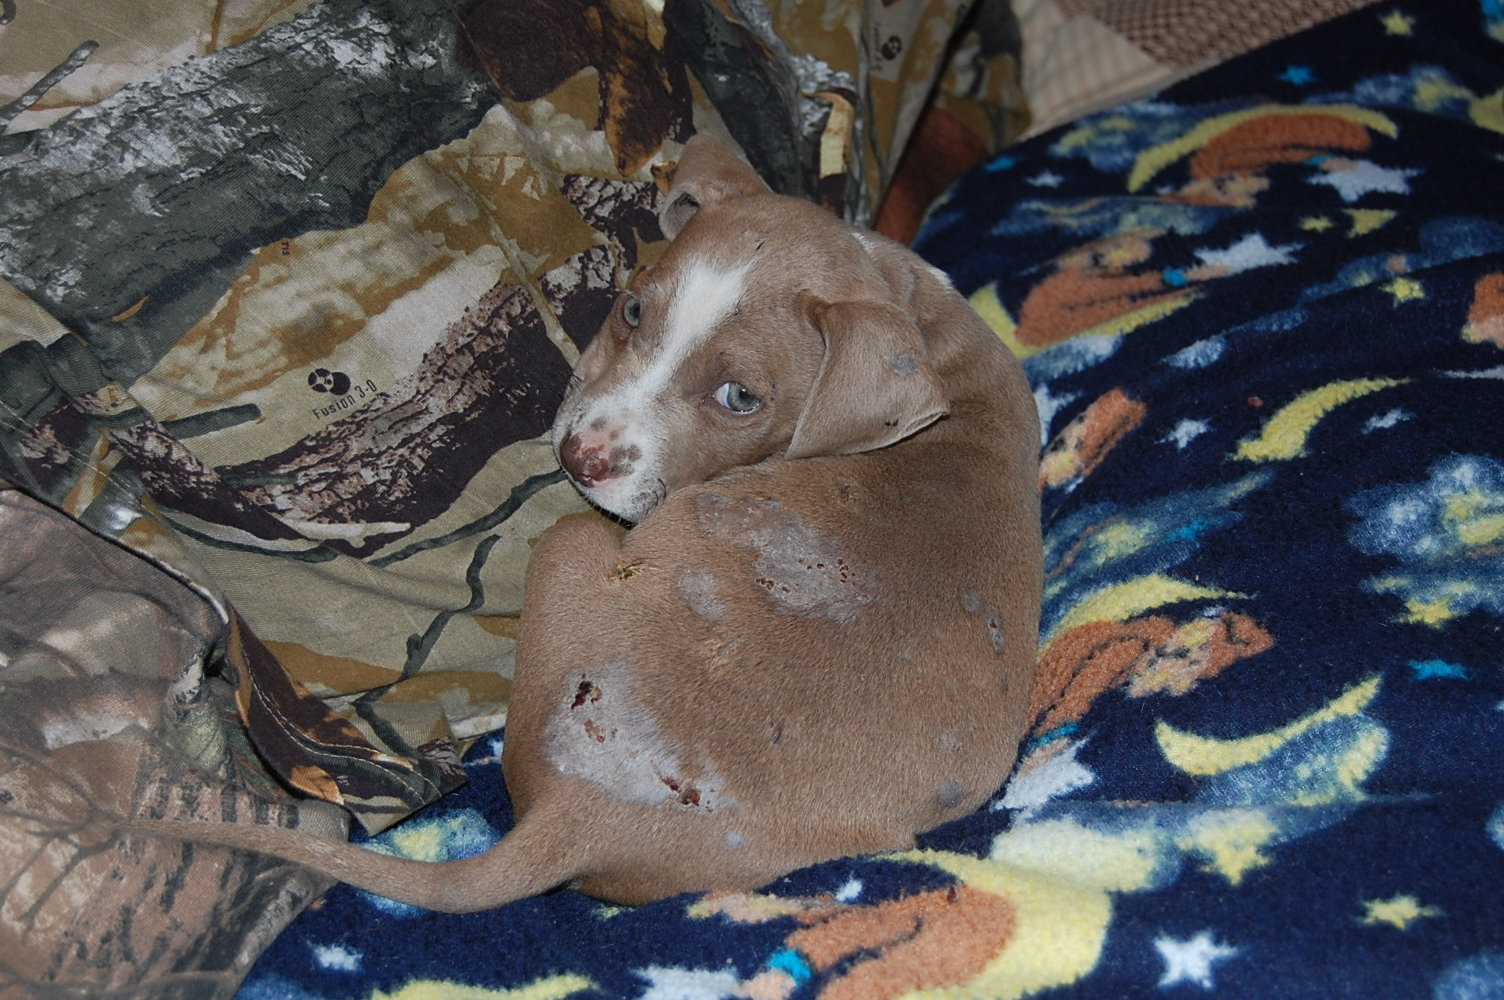 In addition to a broken pelvis, Trooper has many wounds and injuries.